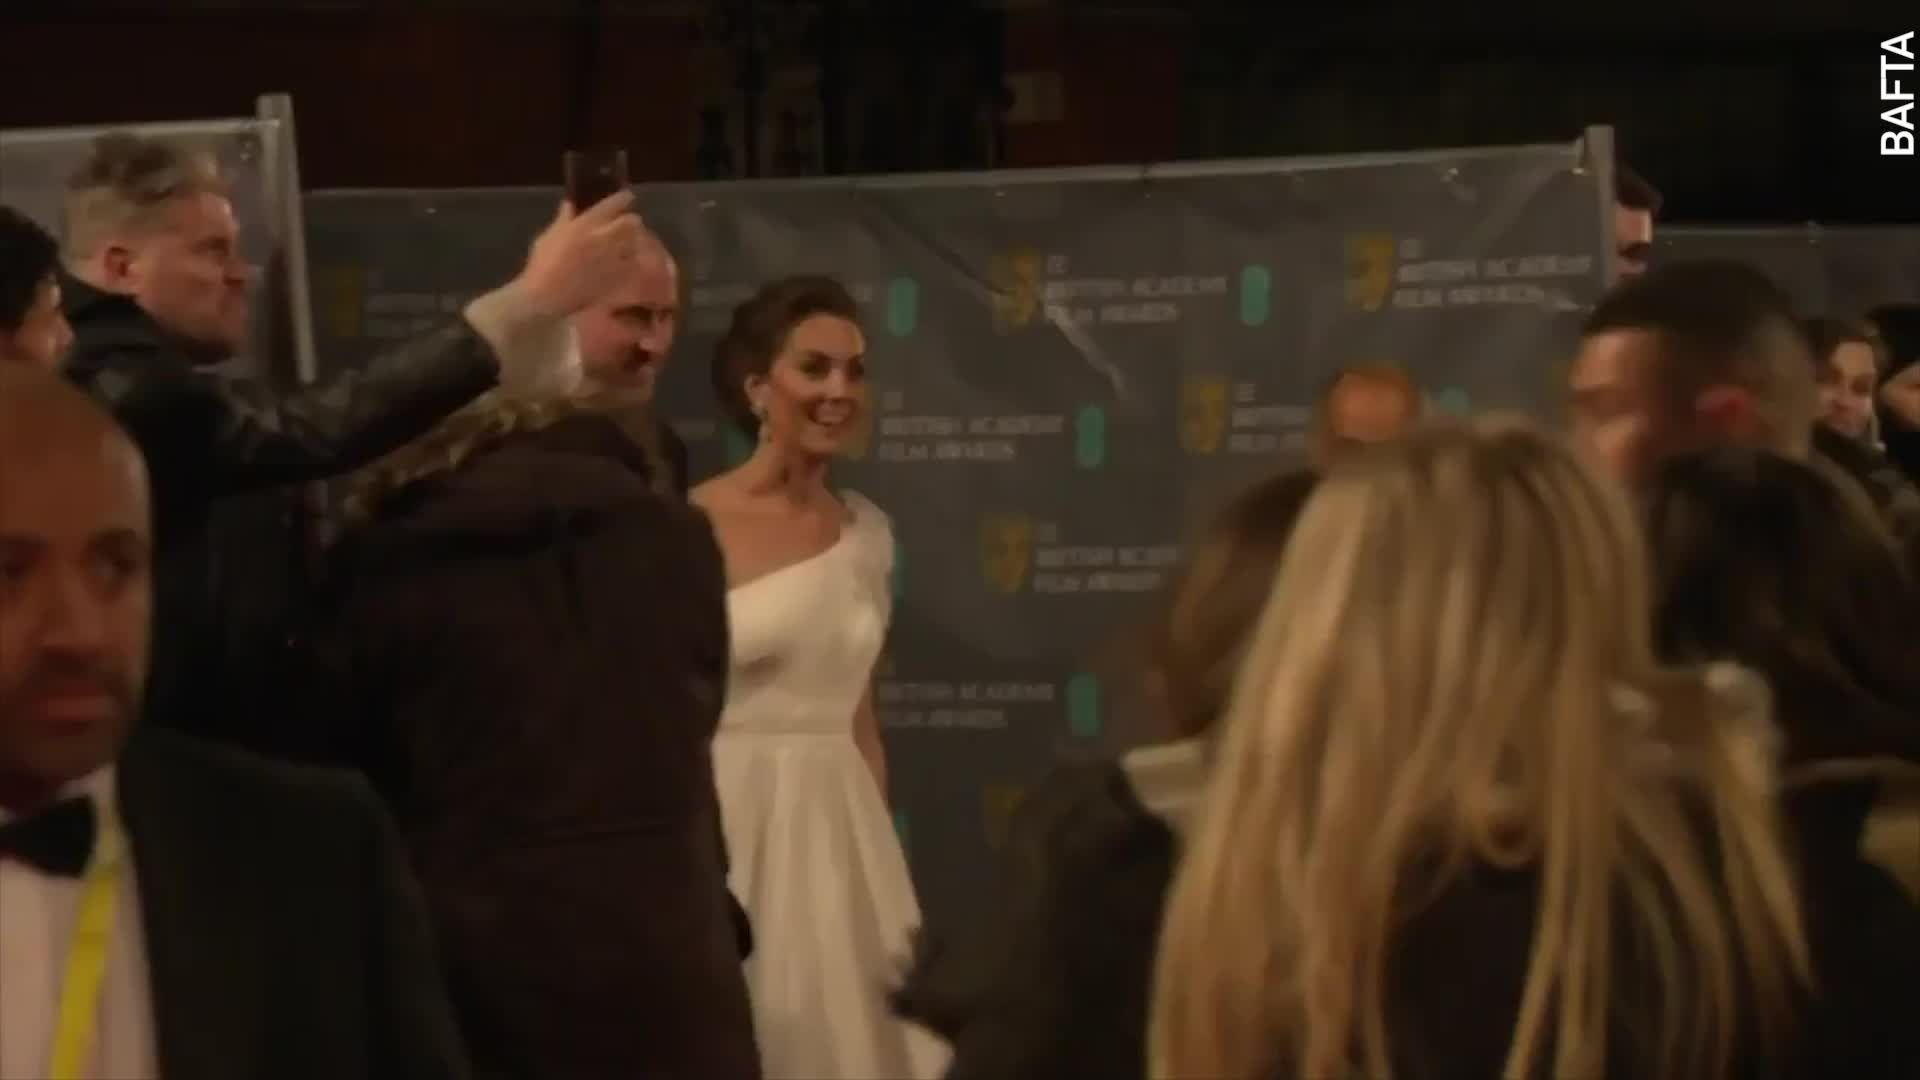 The Moment You Missed: Claire Foy's Funny Facial Expression The Moment Prince William And Kate Middleton Arrive At BAFTAs